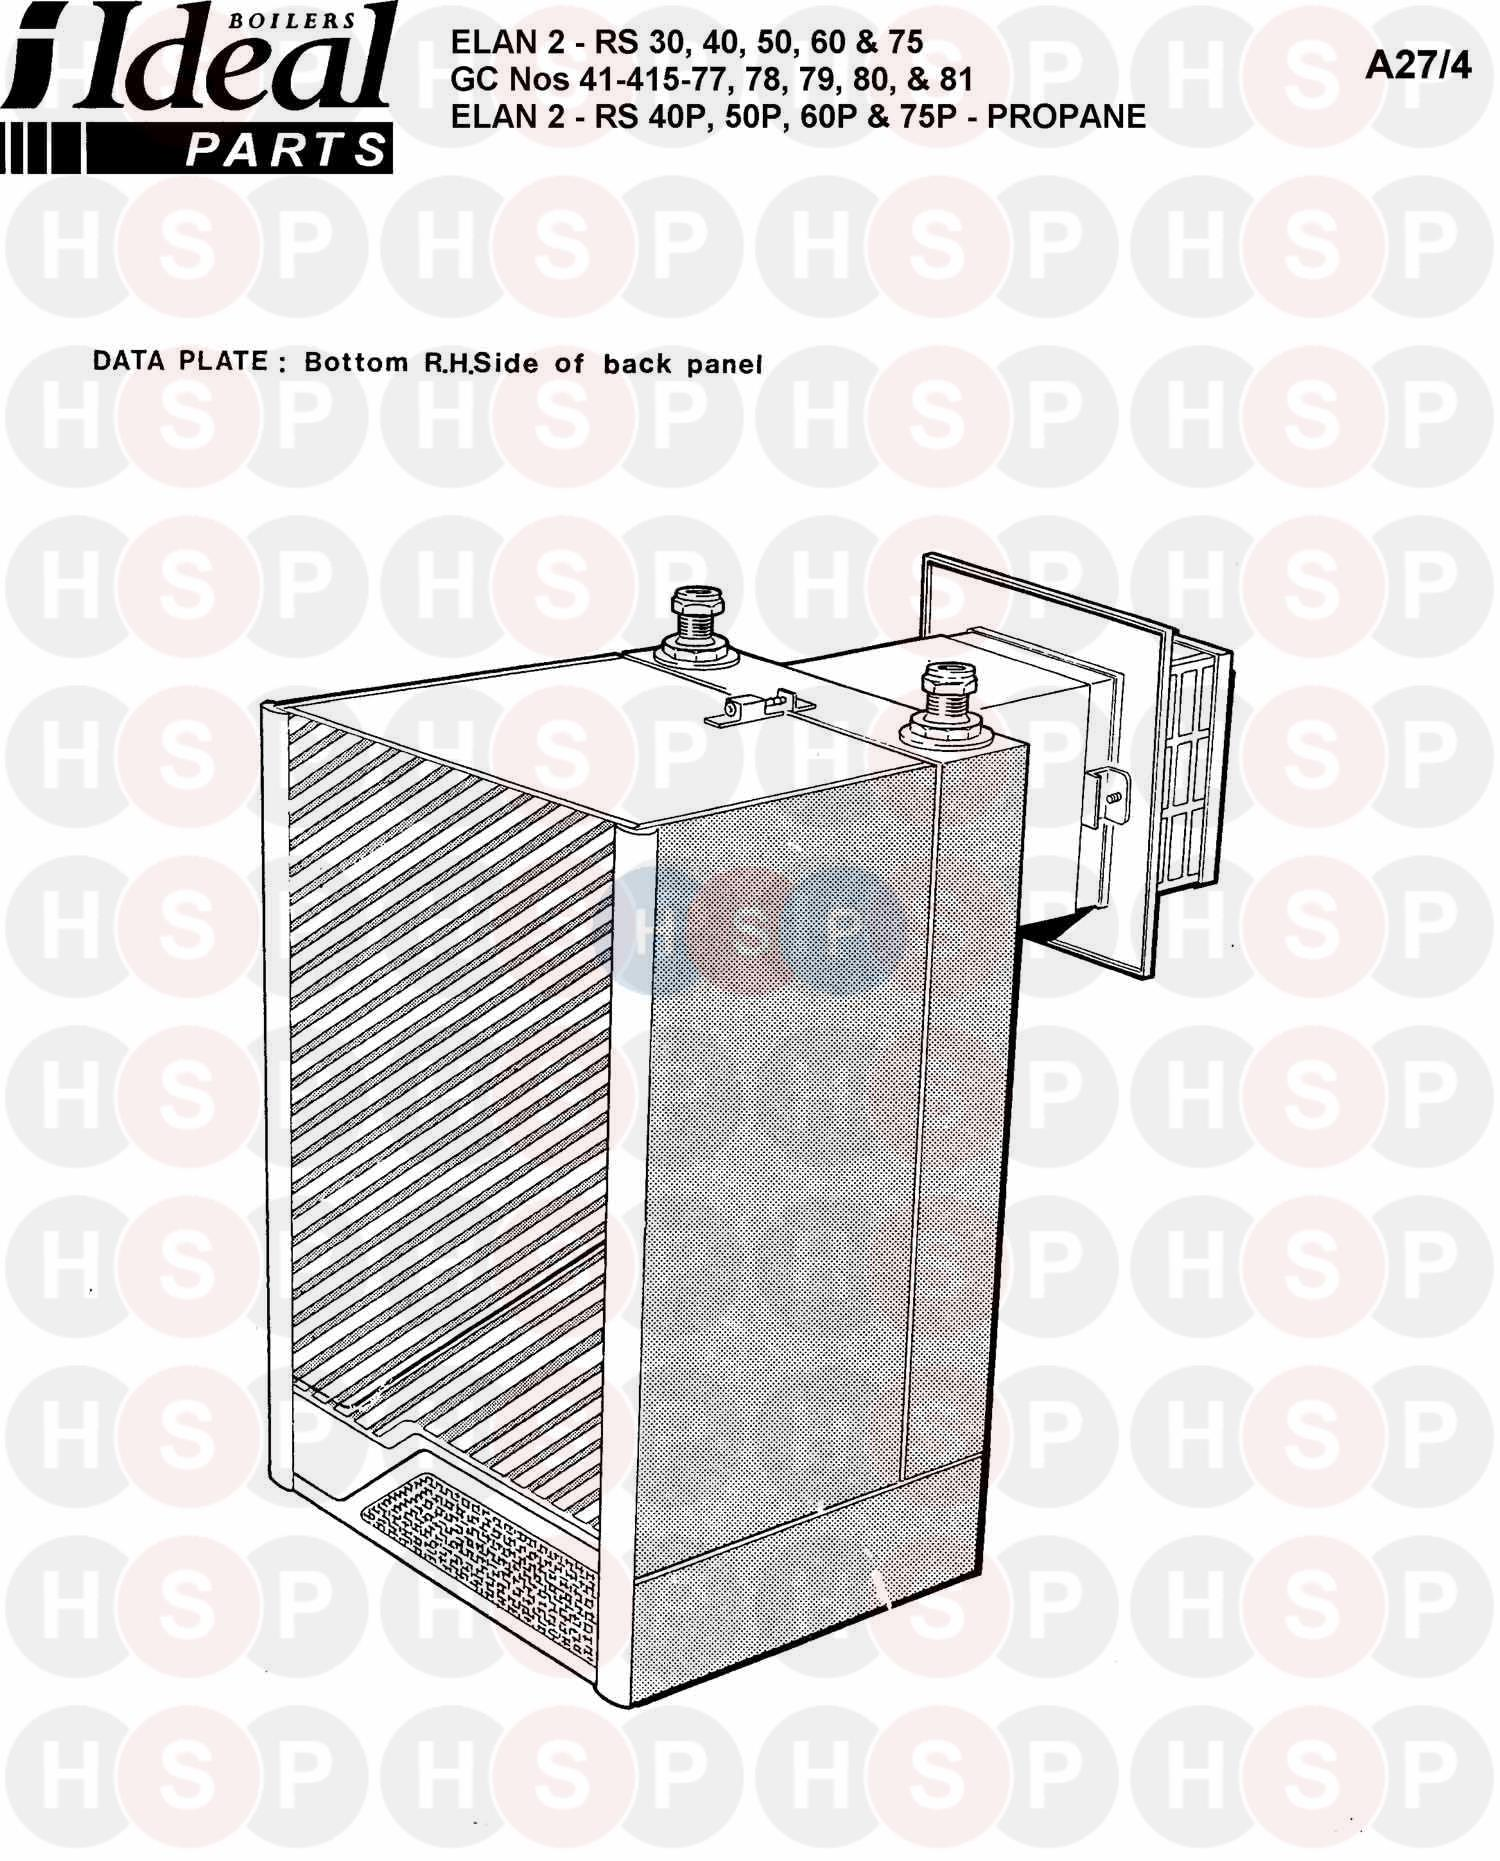 Ideal ELAN 2 RS 75 (APPLIANCE OVERVIEW) Diagram